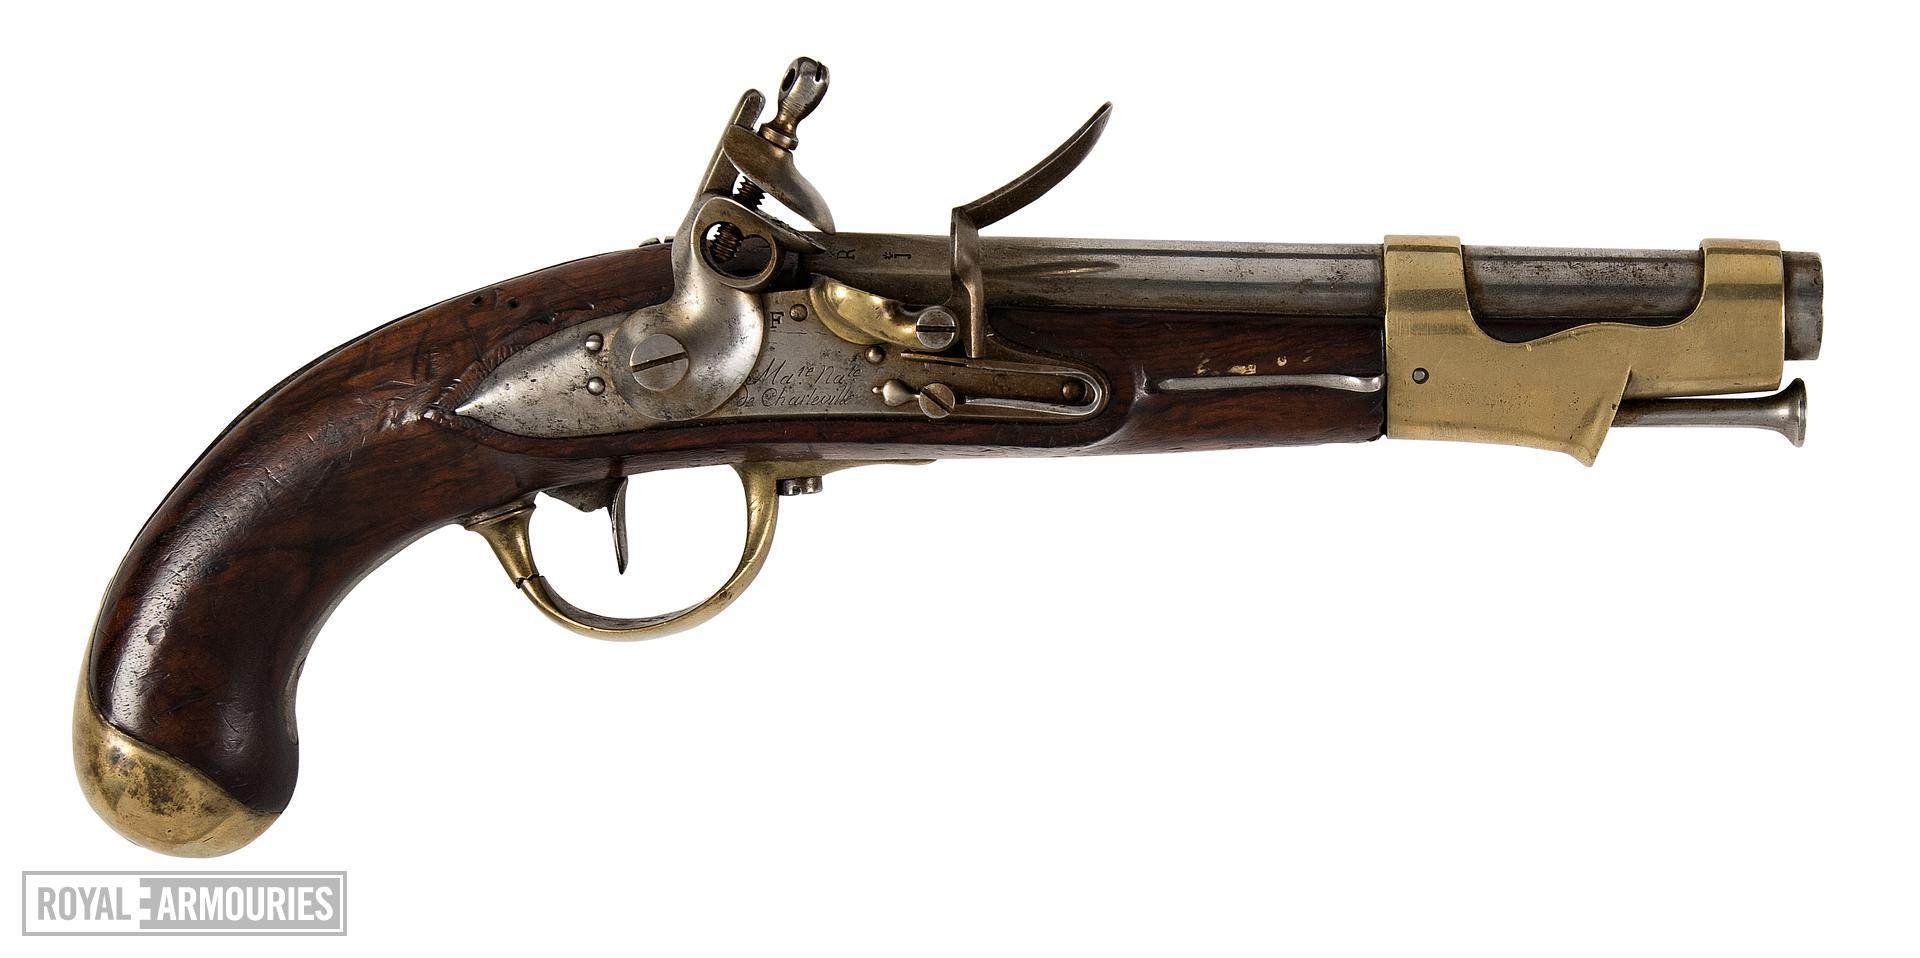 IX Model flintlock muzzle-loading military pistol, France, 1802 (XII.866)